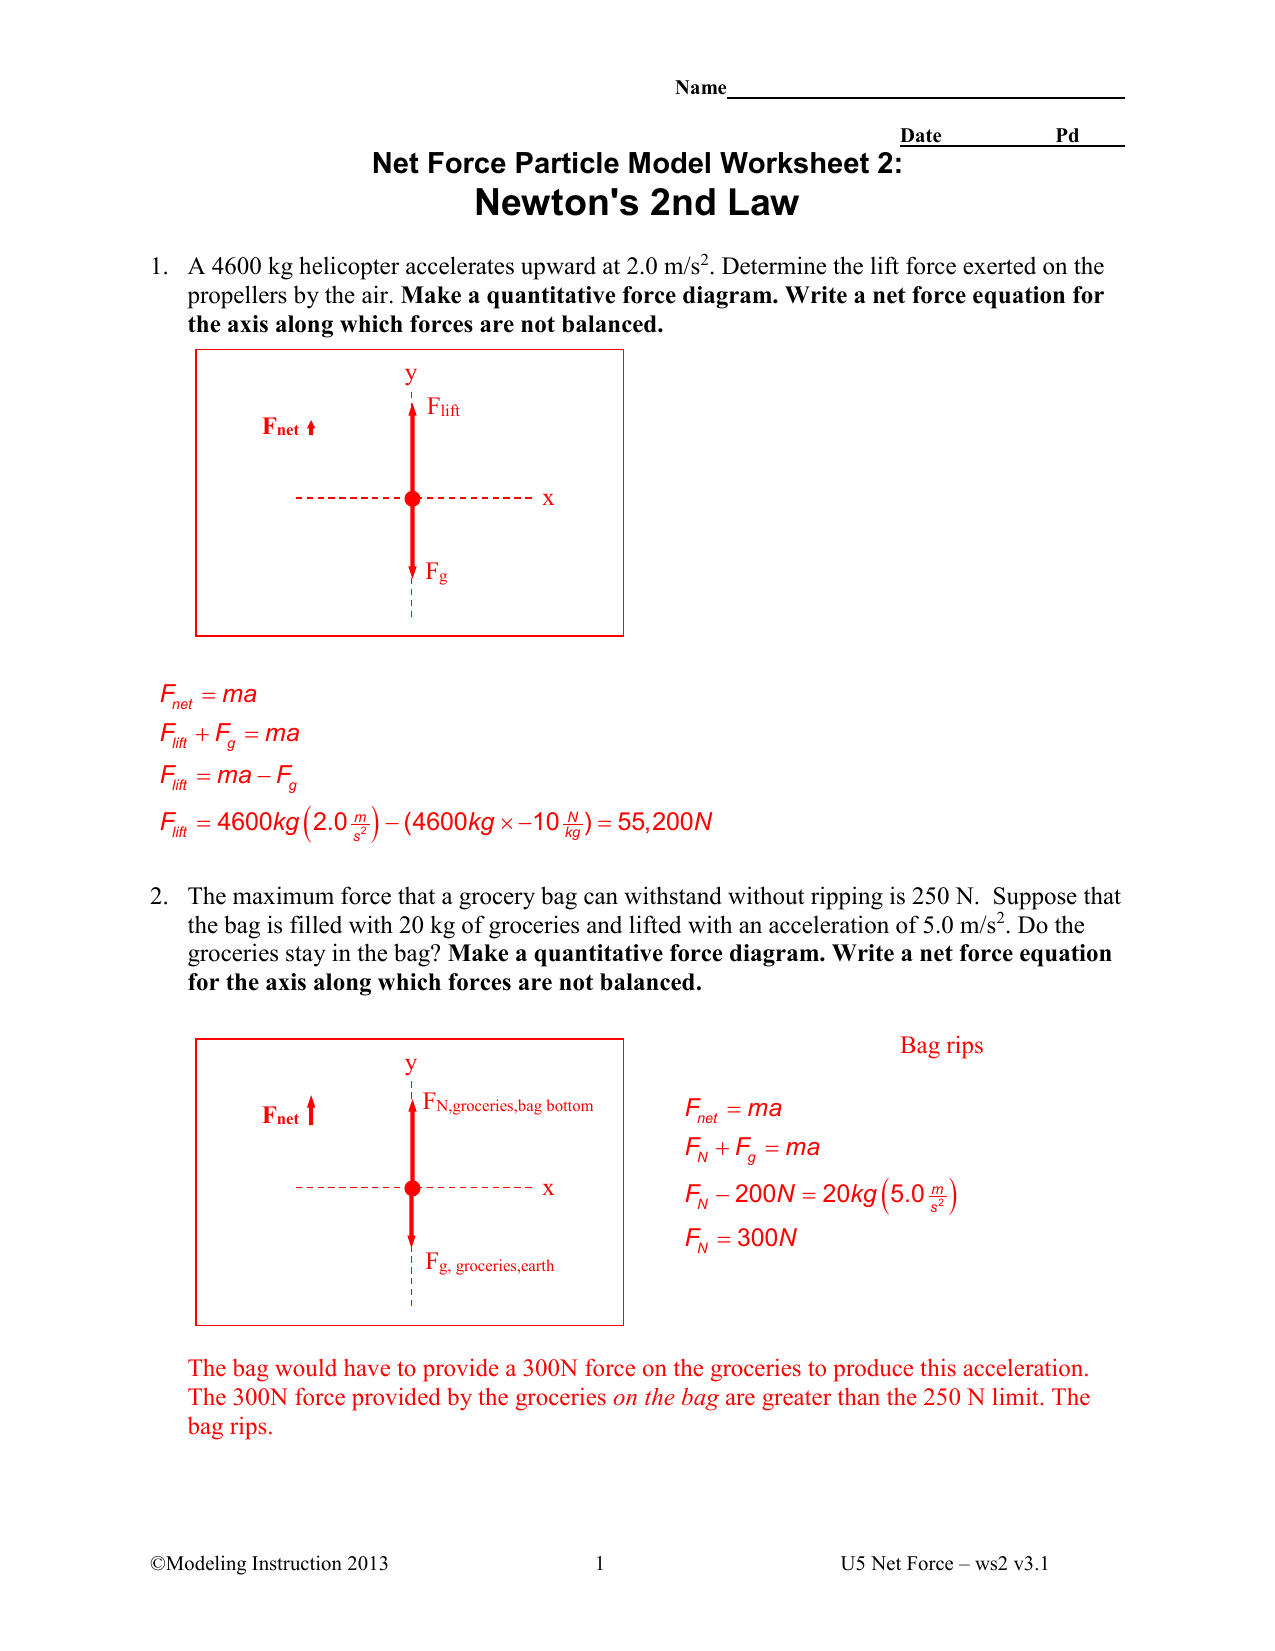 net force particle model worksheet 2 newton s 2nd law answers kidz activities. Black Bedroom Furniture Sets. Home Design Ideas